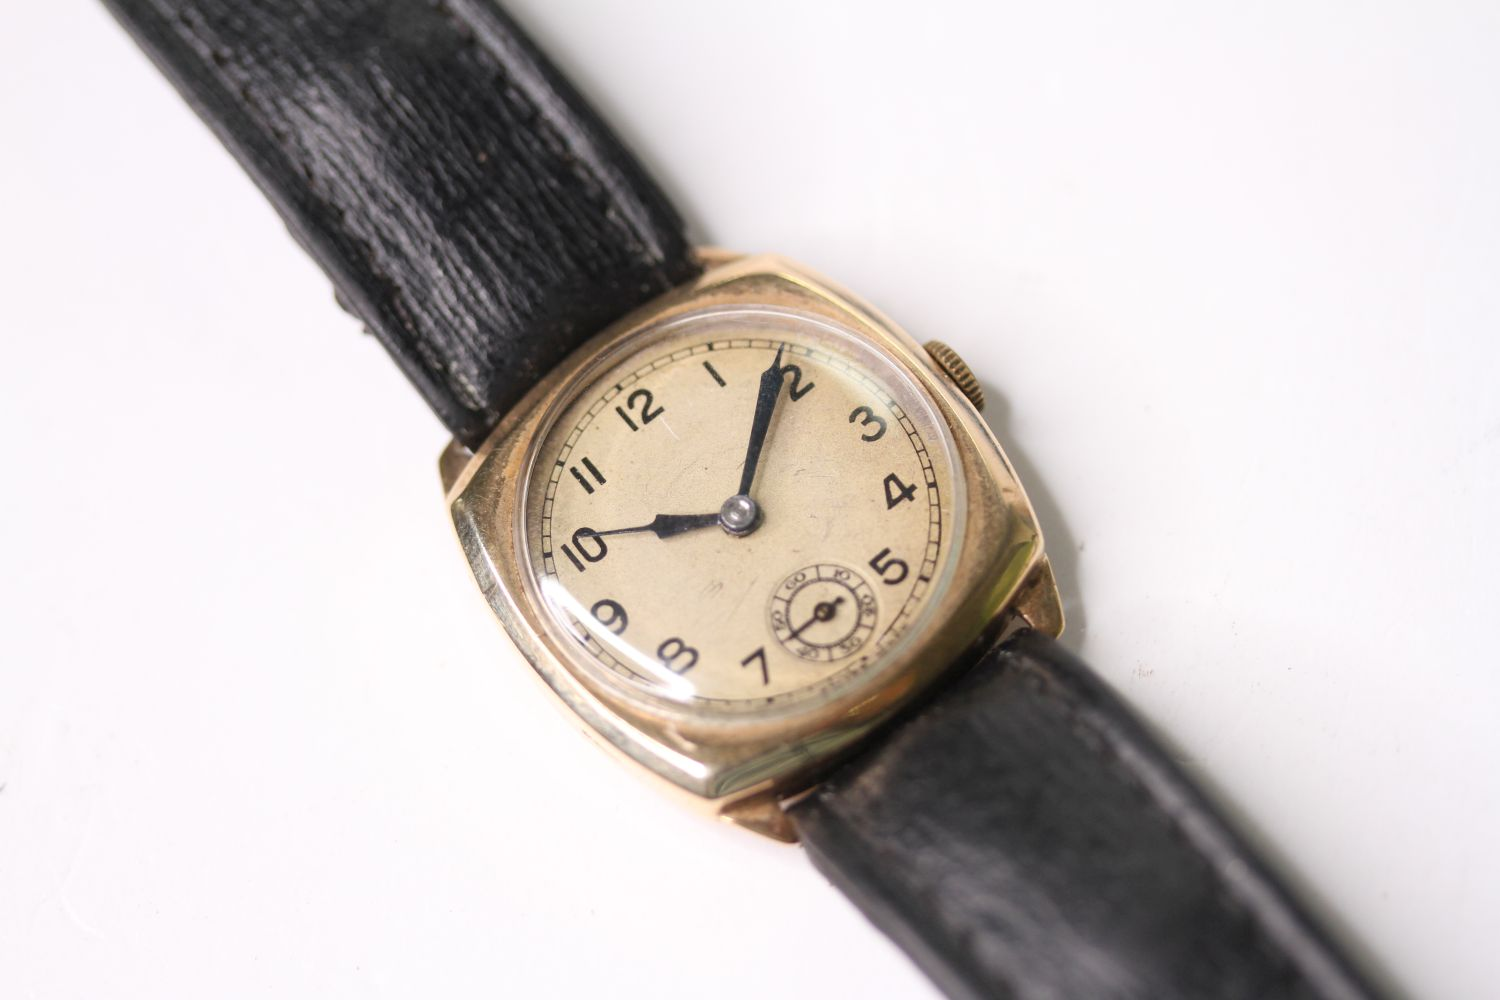 9CT GOLD TRENCH WRISTWATCH, circular silver dial with arabic numbers, small seconds at 6 0'clock,